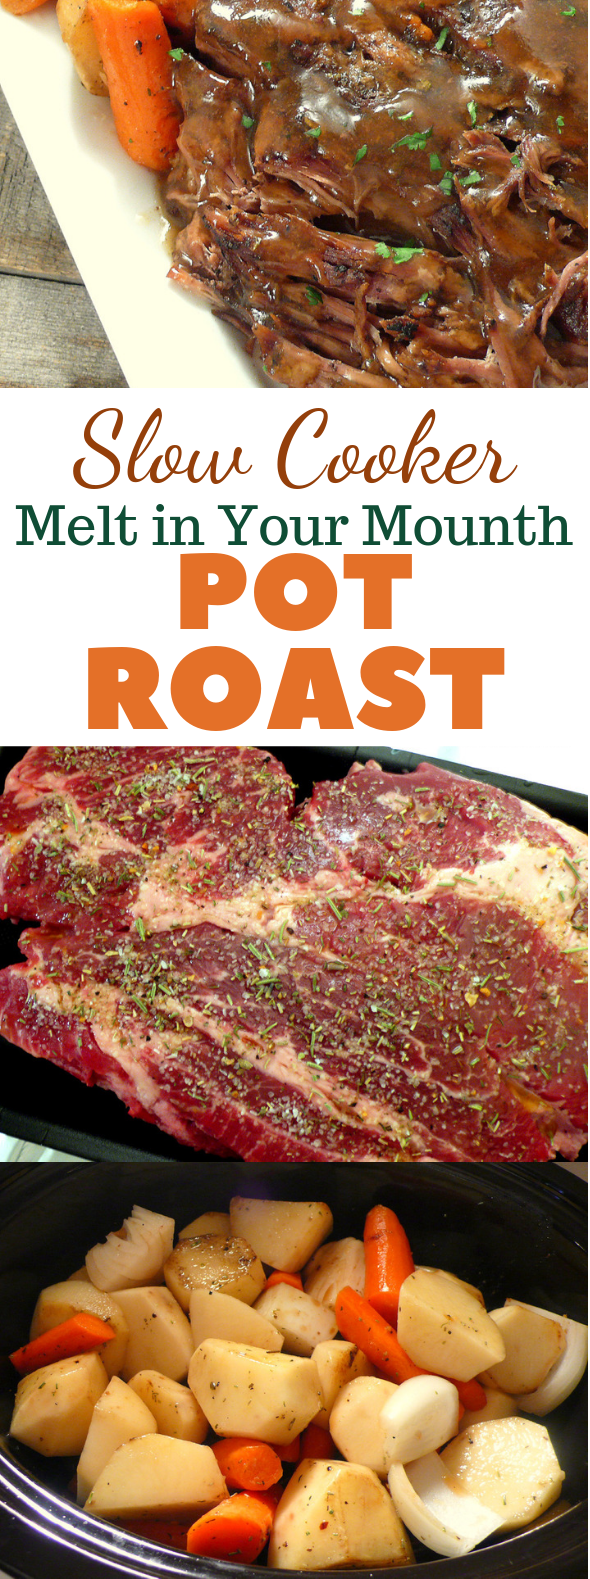 Melt-in-Your-Mouth Pot Roast #Dinner #InstantPot